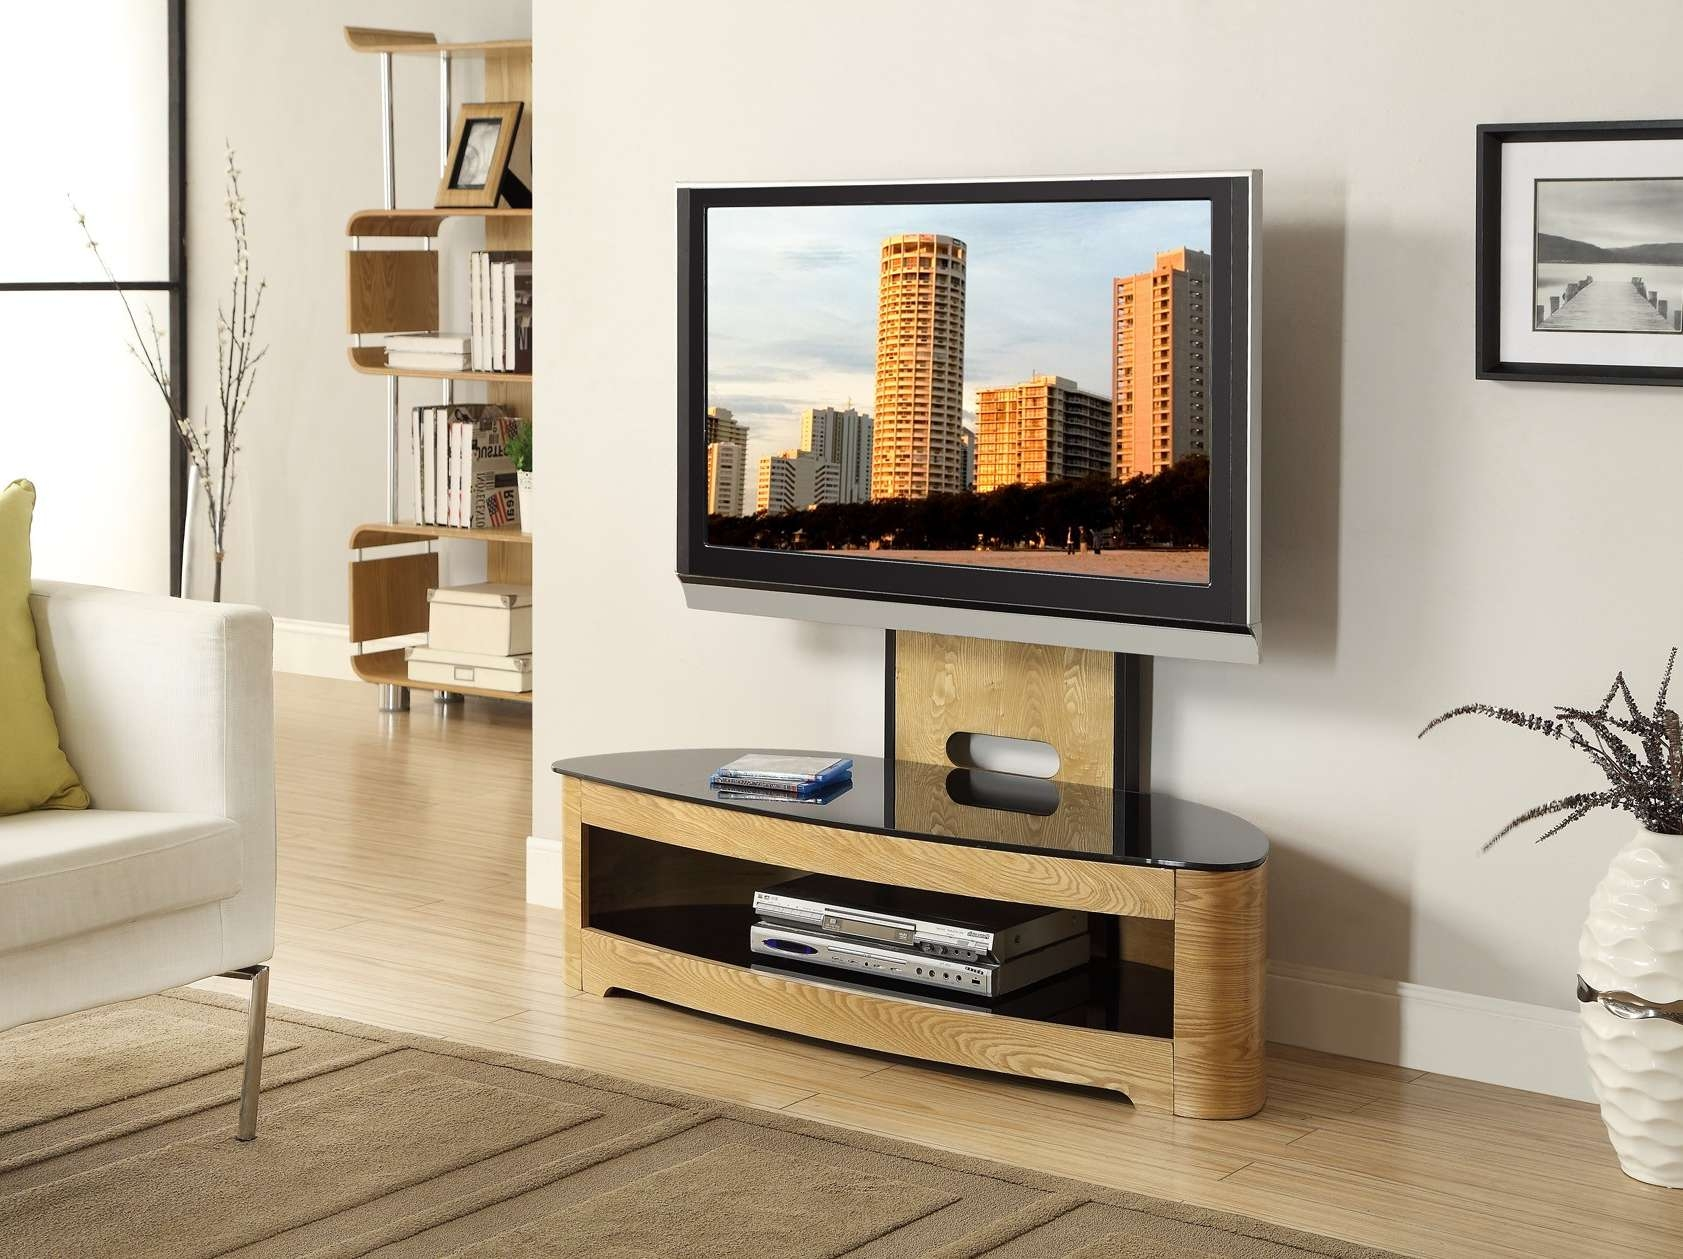 Tv : Astounding Oak Tv Stand With Glass Top Superior Oak Tv Stand Within Wood Tv Stands With Glass Top (View 11 of 15)